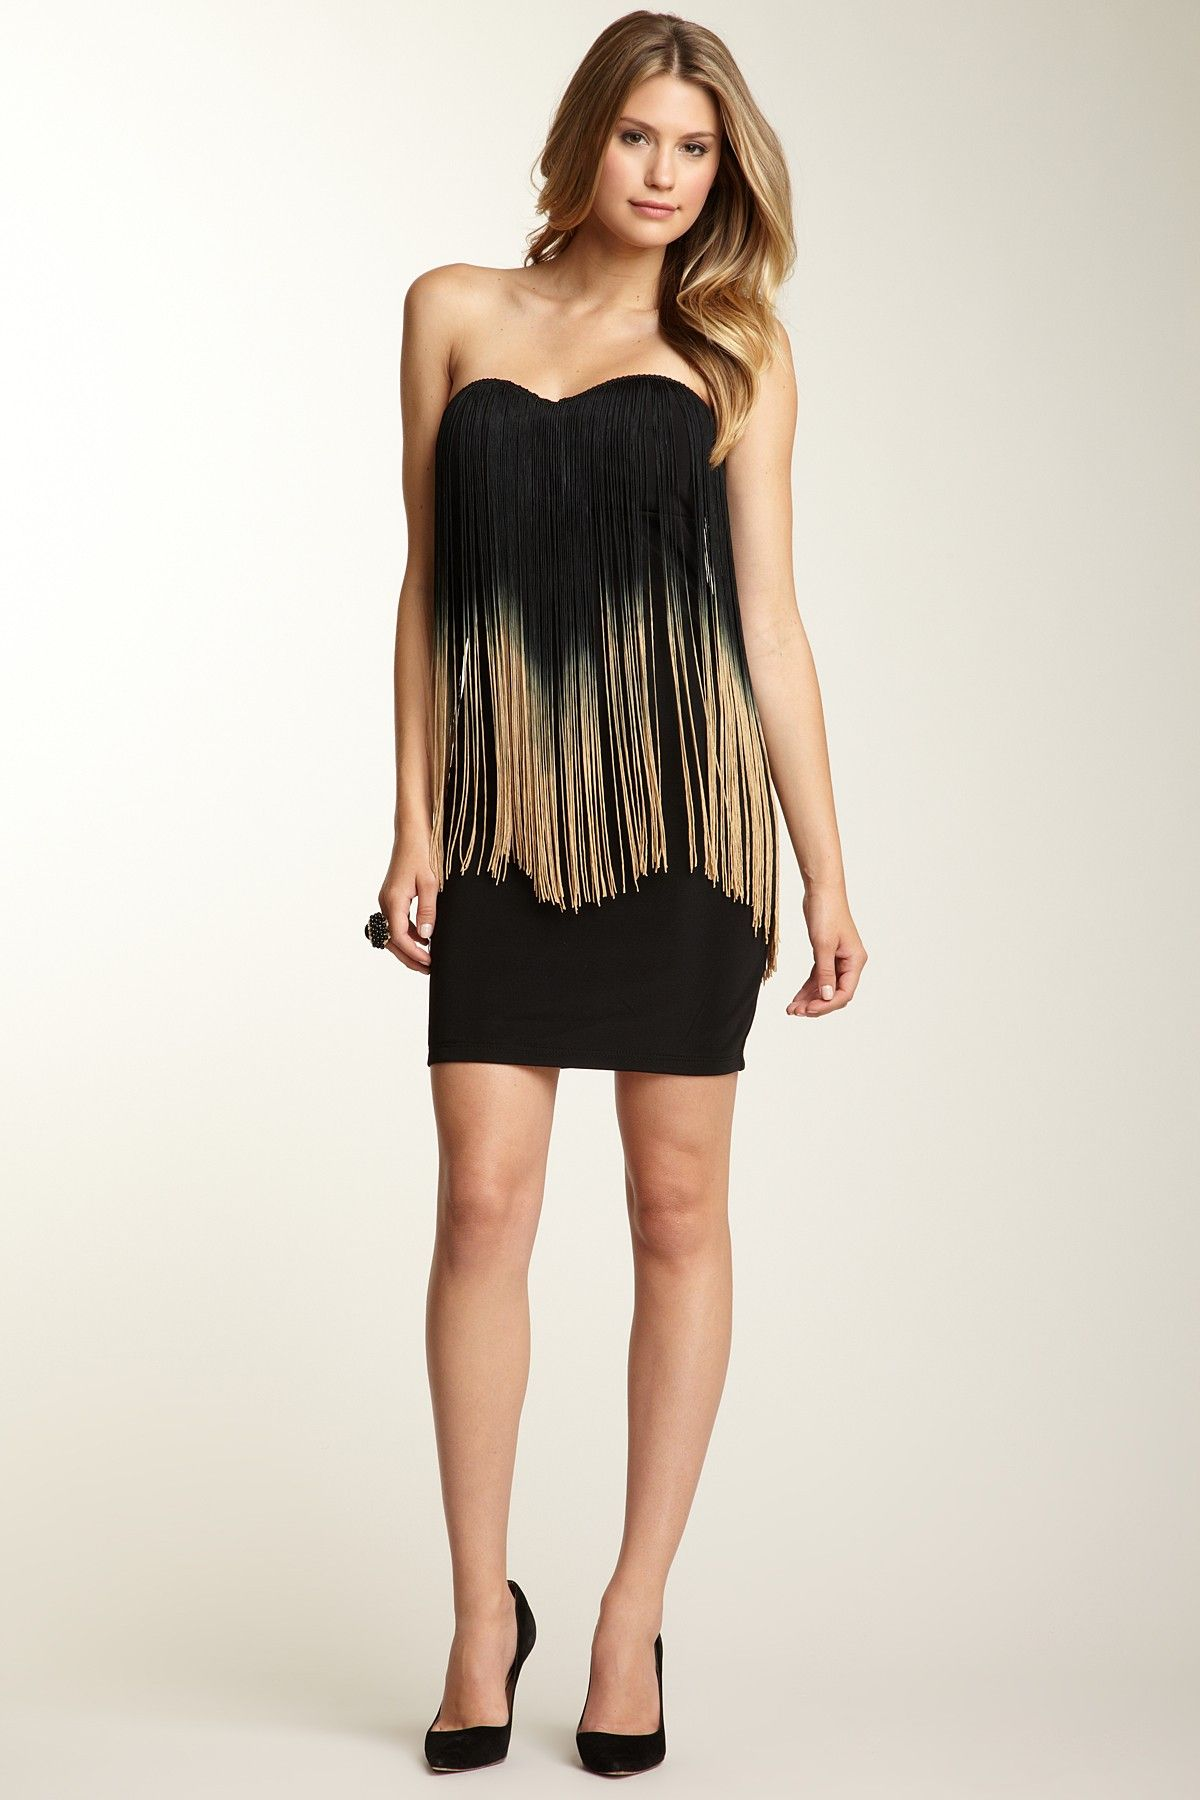 Sara boo ombre fringe strapless dress my favorite beautiful people